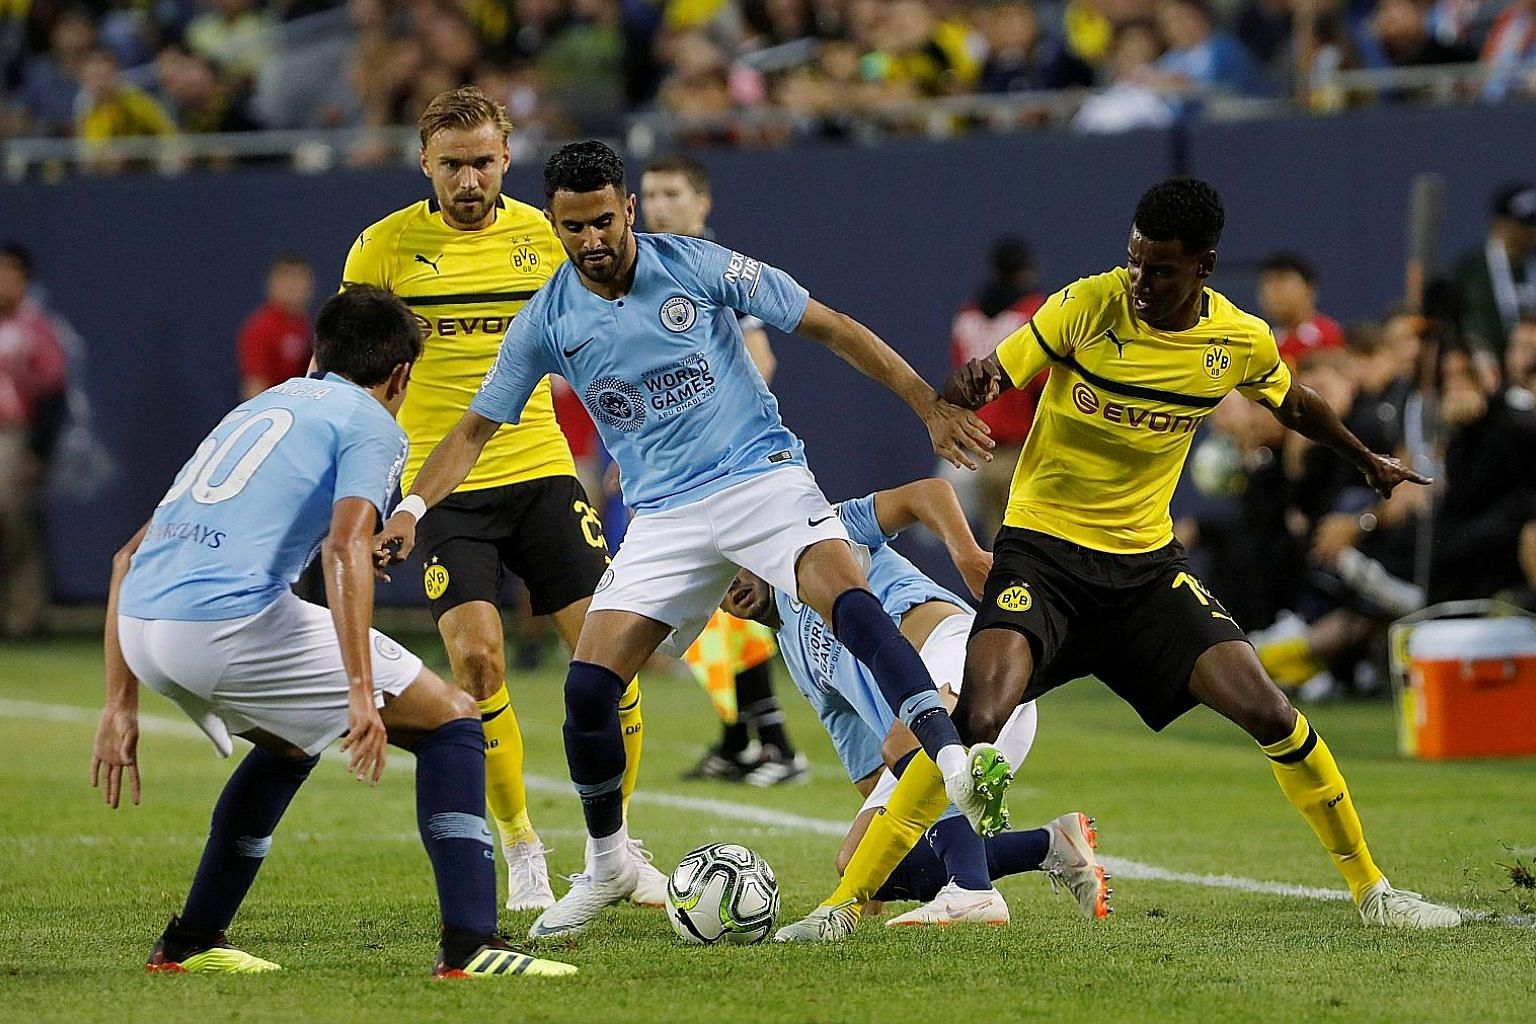 Club-record signing Riyad Mahrez made his debut for Manchester City in the International Champions Cup match against German side Borussia Dortmund at the Soldier Field Stadium in Chicago on Friday. The Algerian came close to scoring with a 20-yard fr